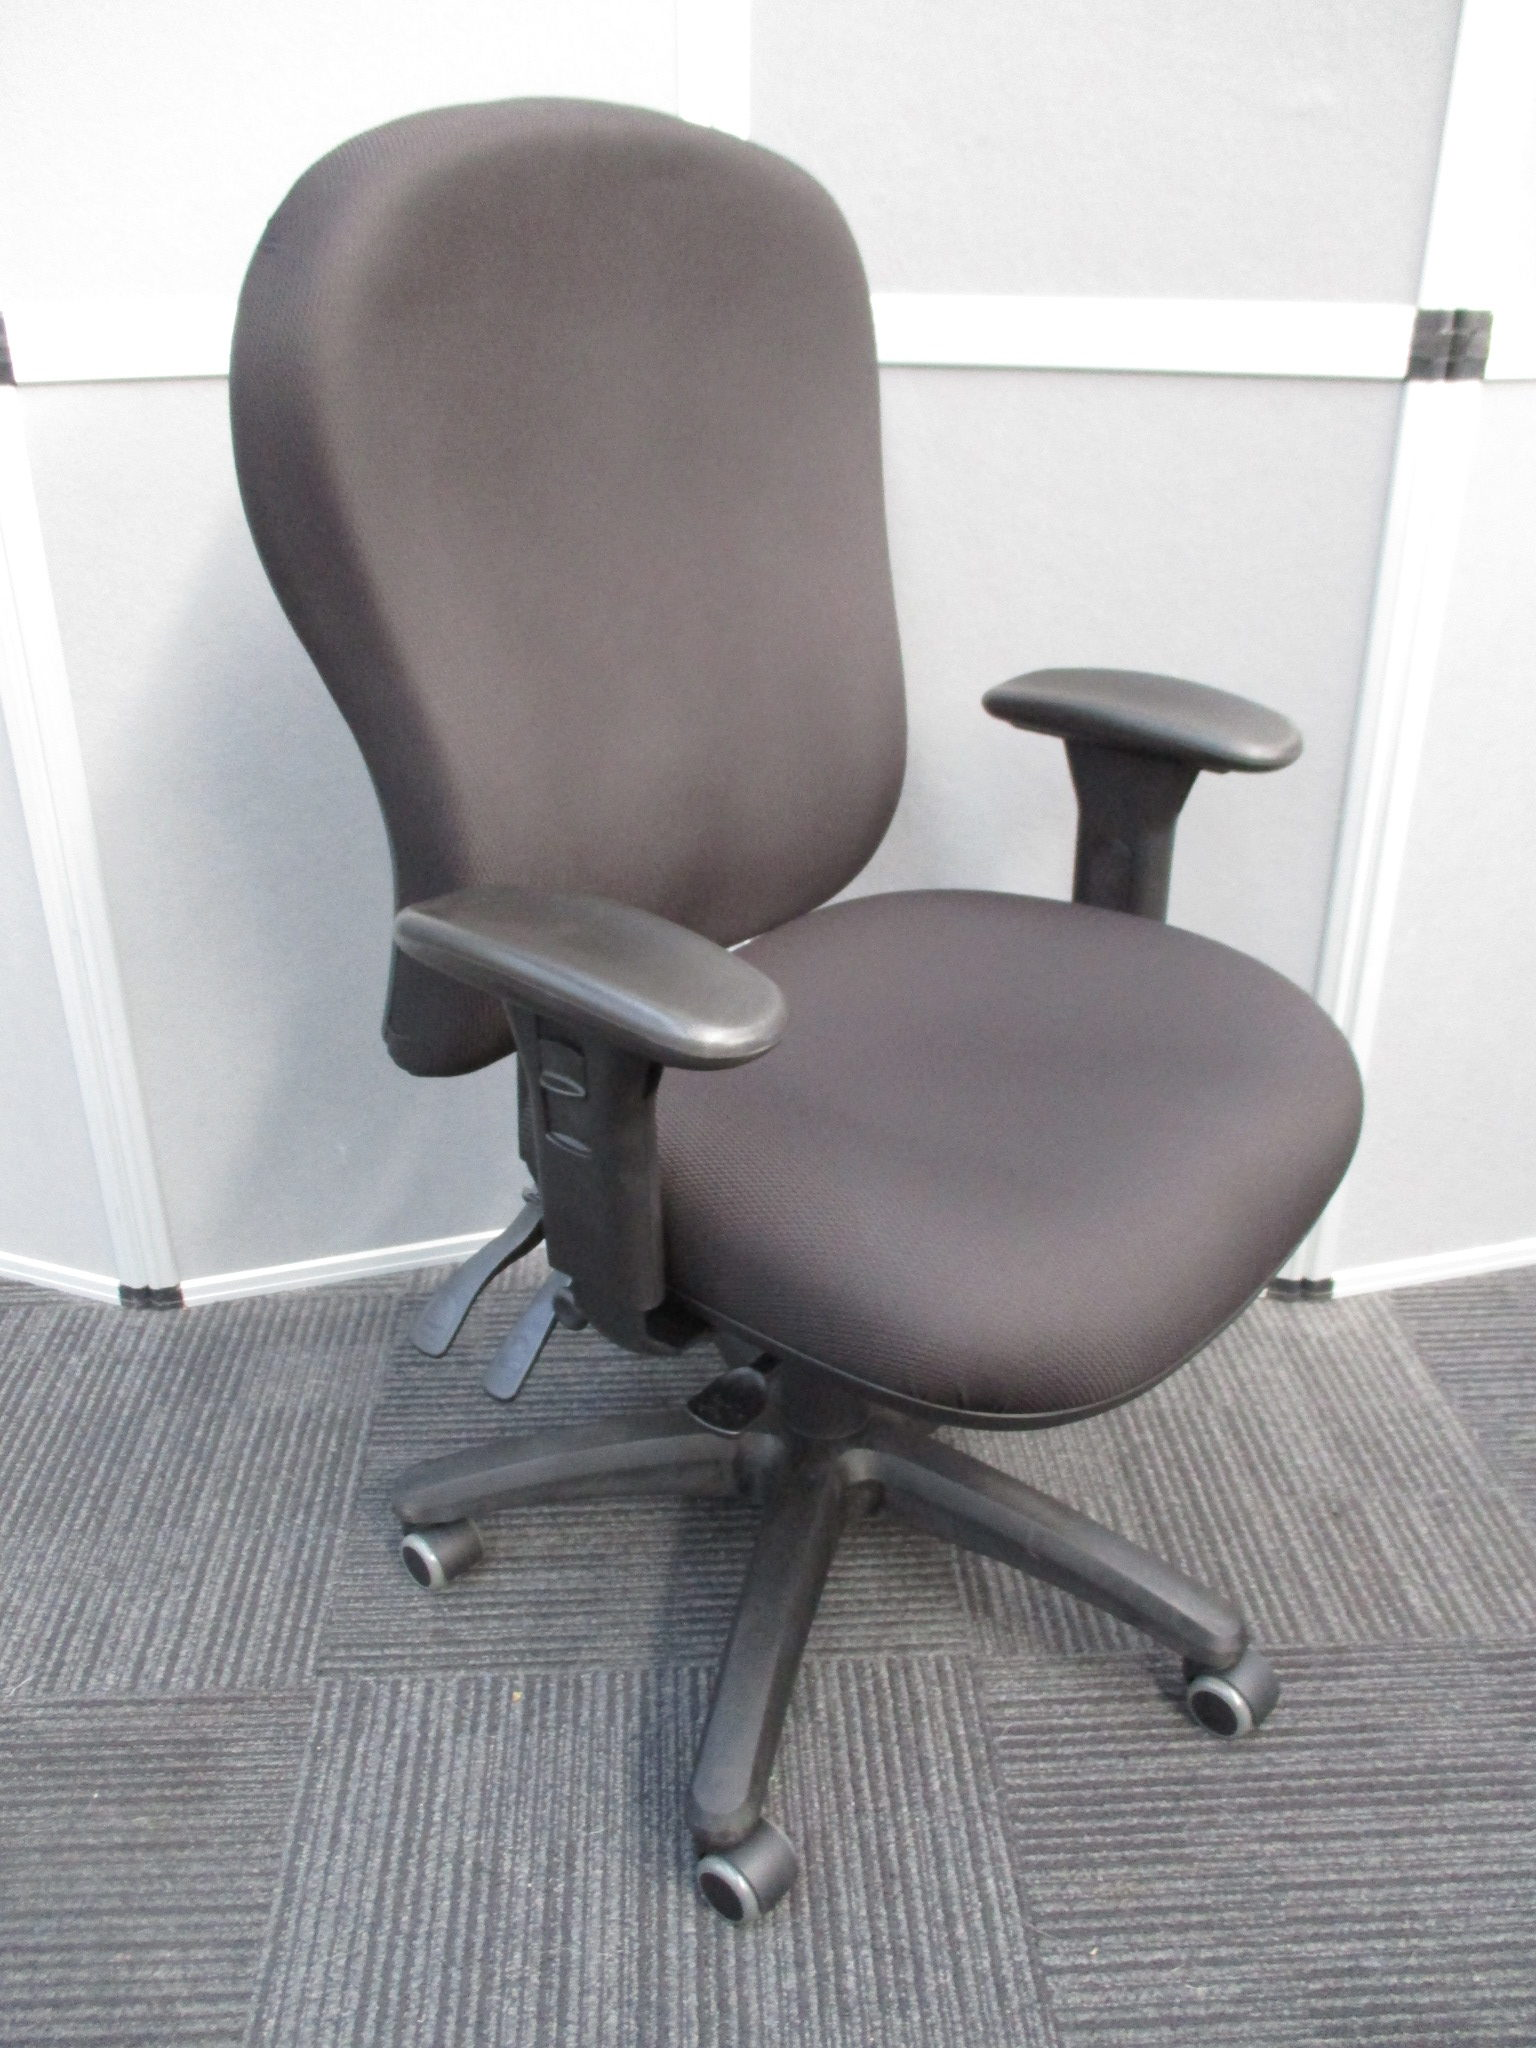 New Oxley Chairs $330